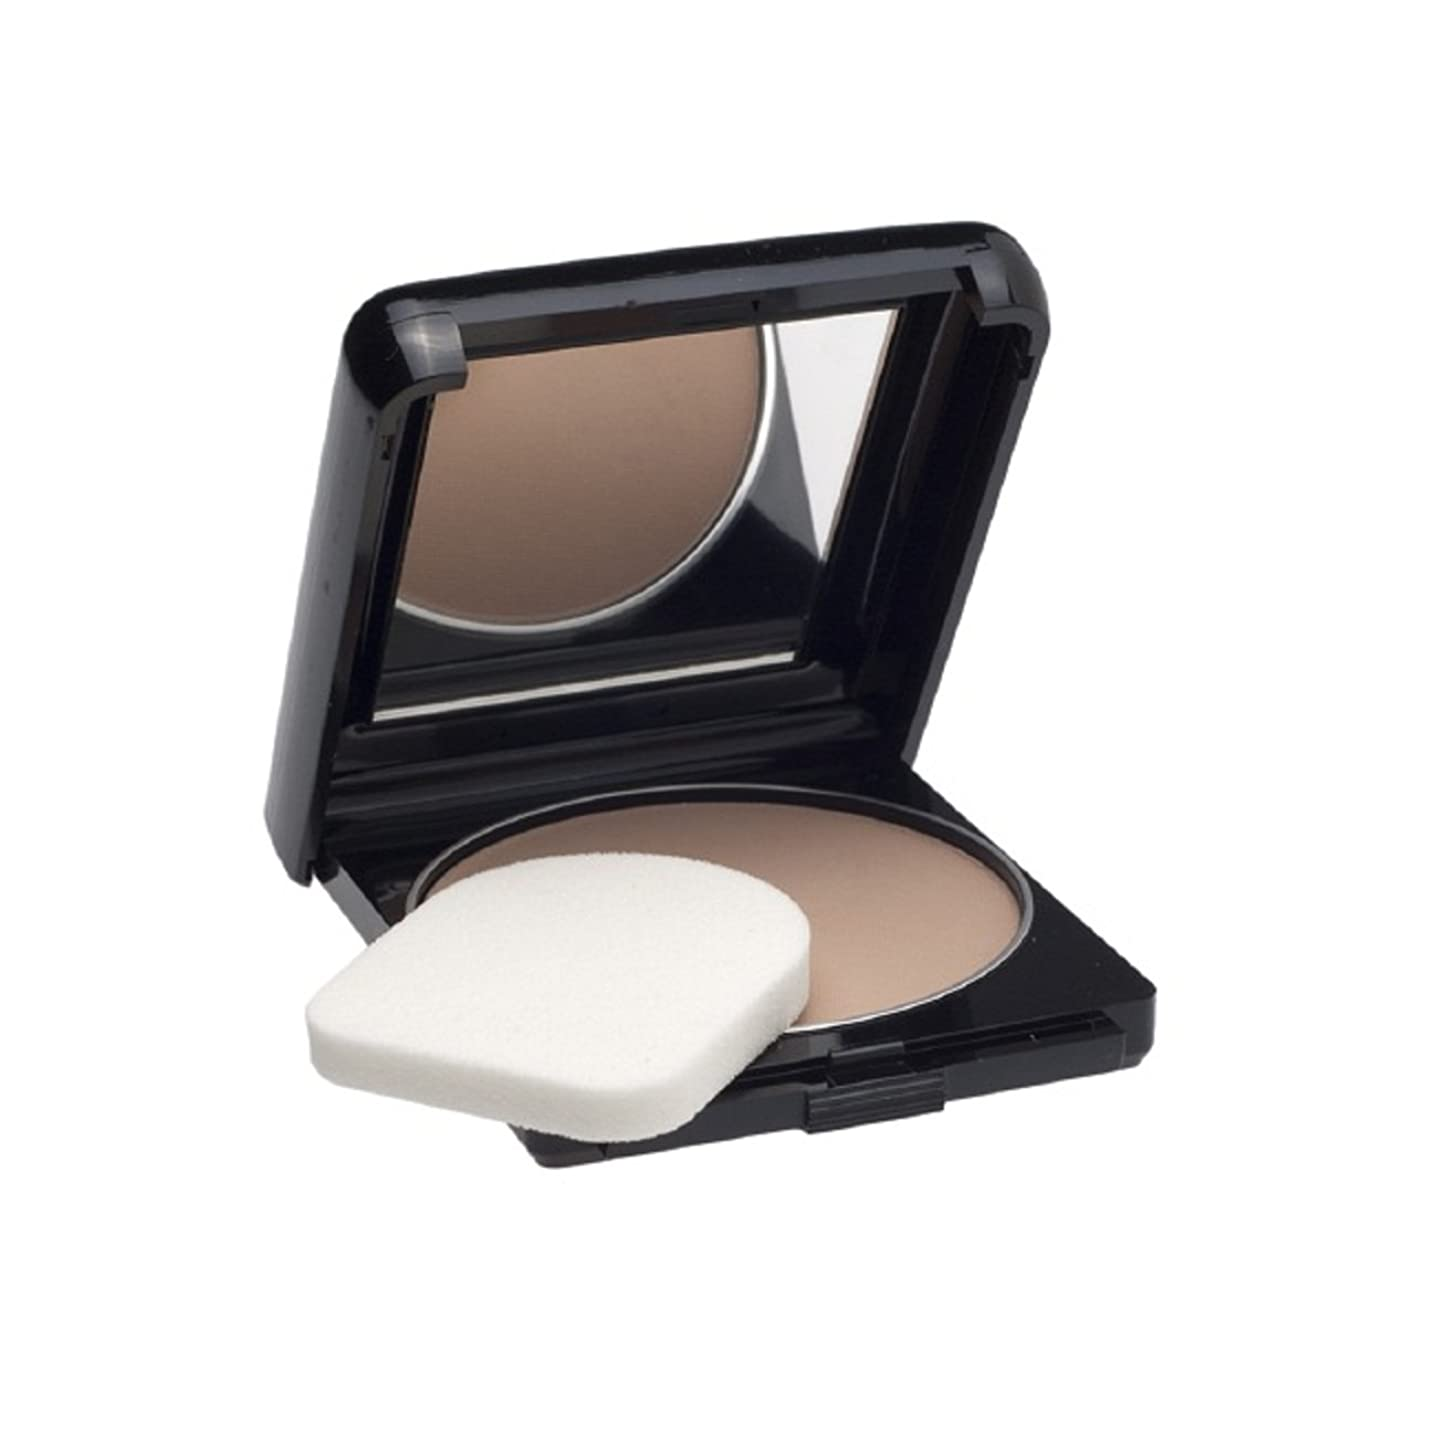 実業家差別化するメディカルCOVERGIRL SIMPLY POWDER FOUNDATION #530 CLASSIC BEIGE